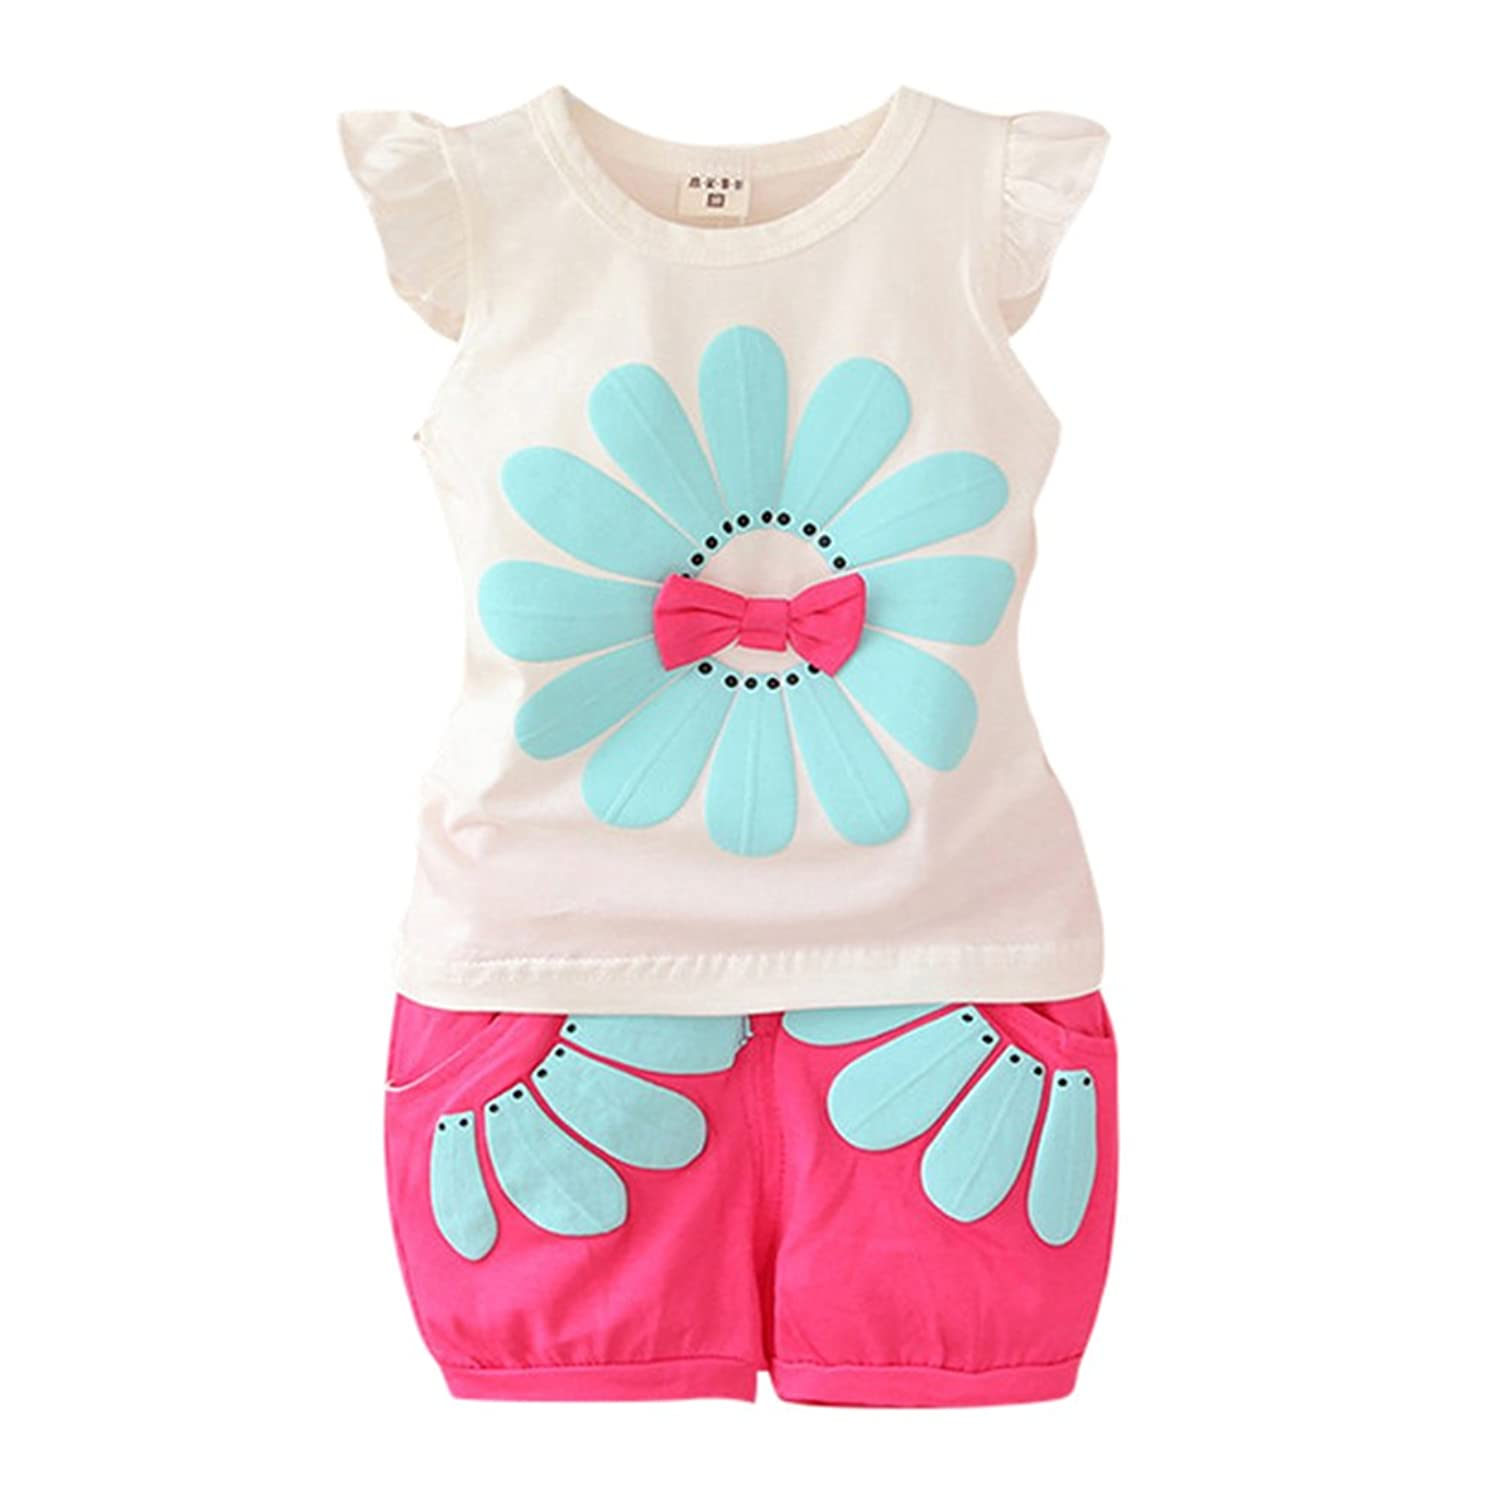 ESHOO Little Girls Sunflower Tops and Shorts Set Summer 2 Pieces Outfits